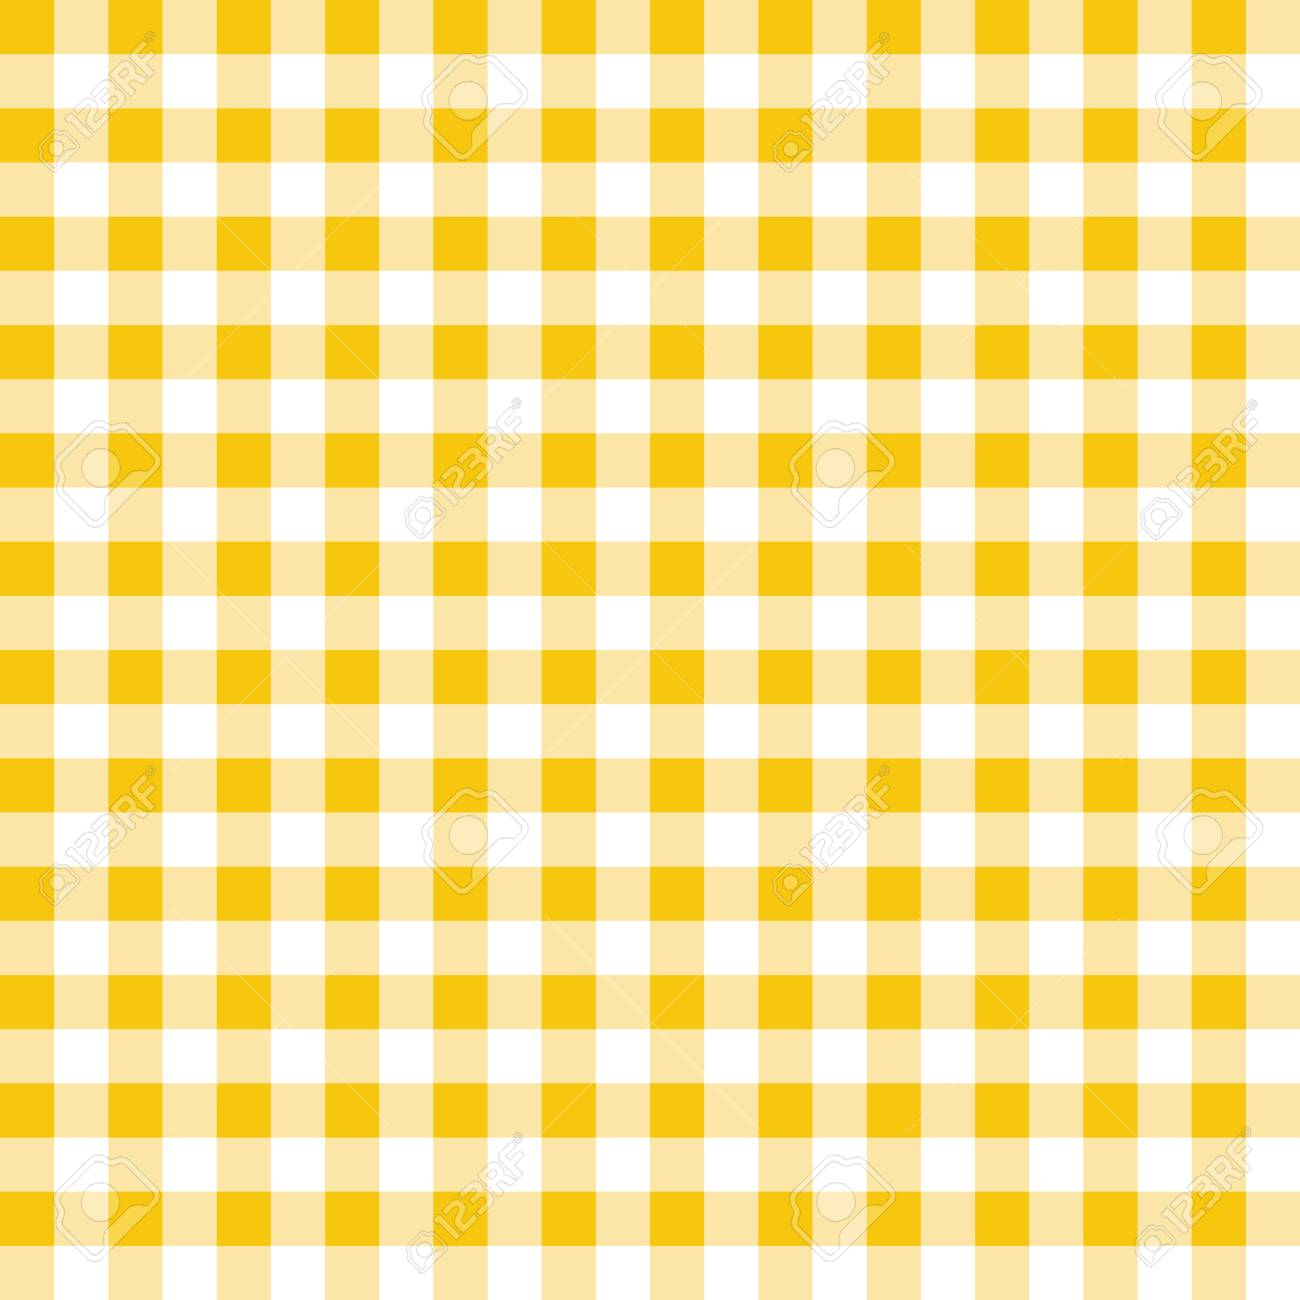 Yellow and white plaid vector background. Seamless repeat checkered pattern. - 121008874